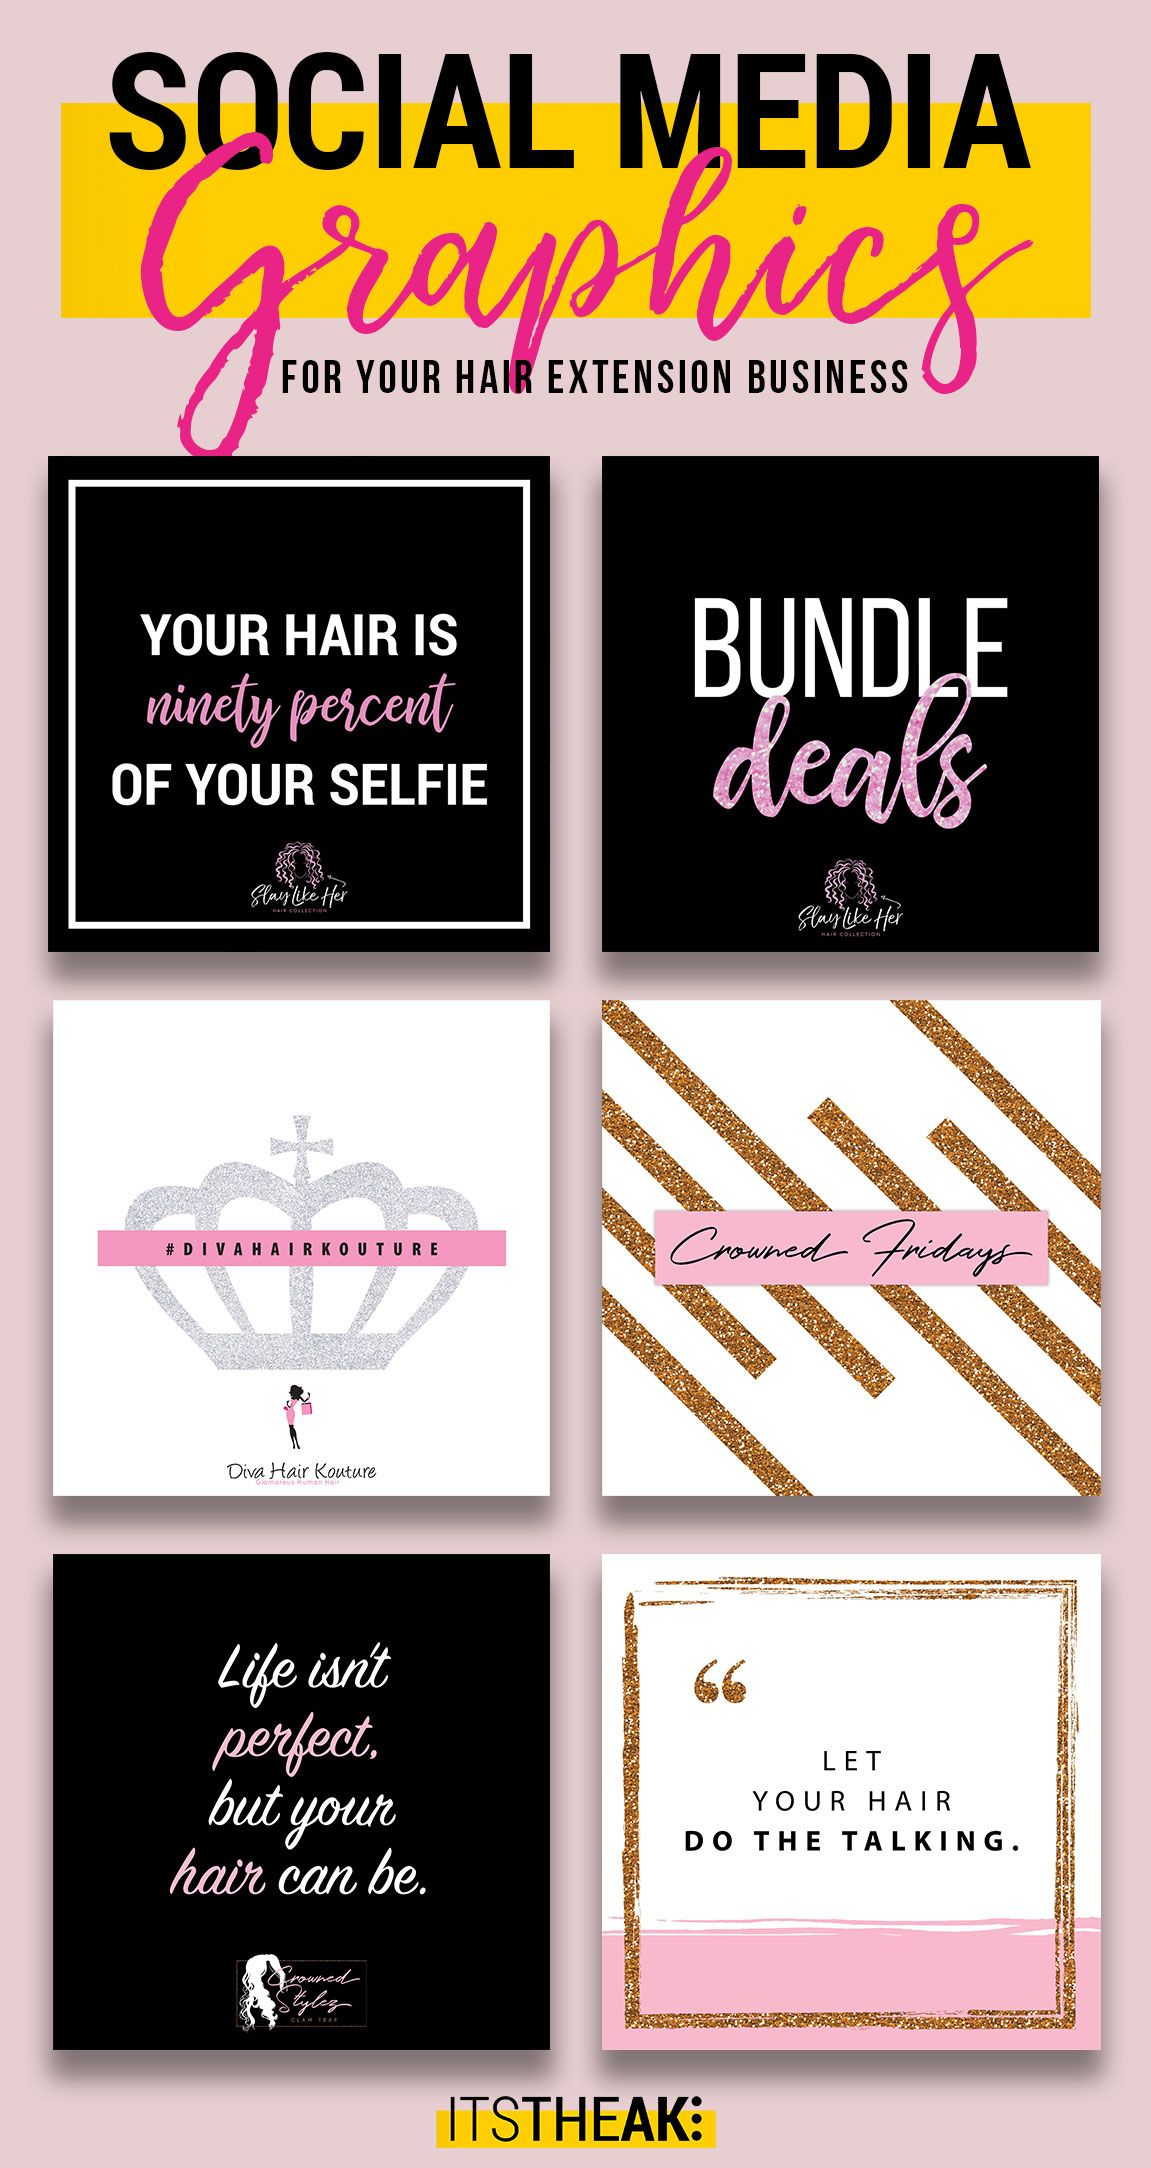 Premade Social Media Graphics For Hair Extension Businesses